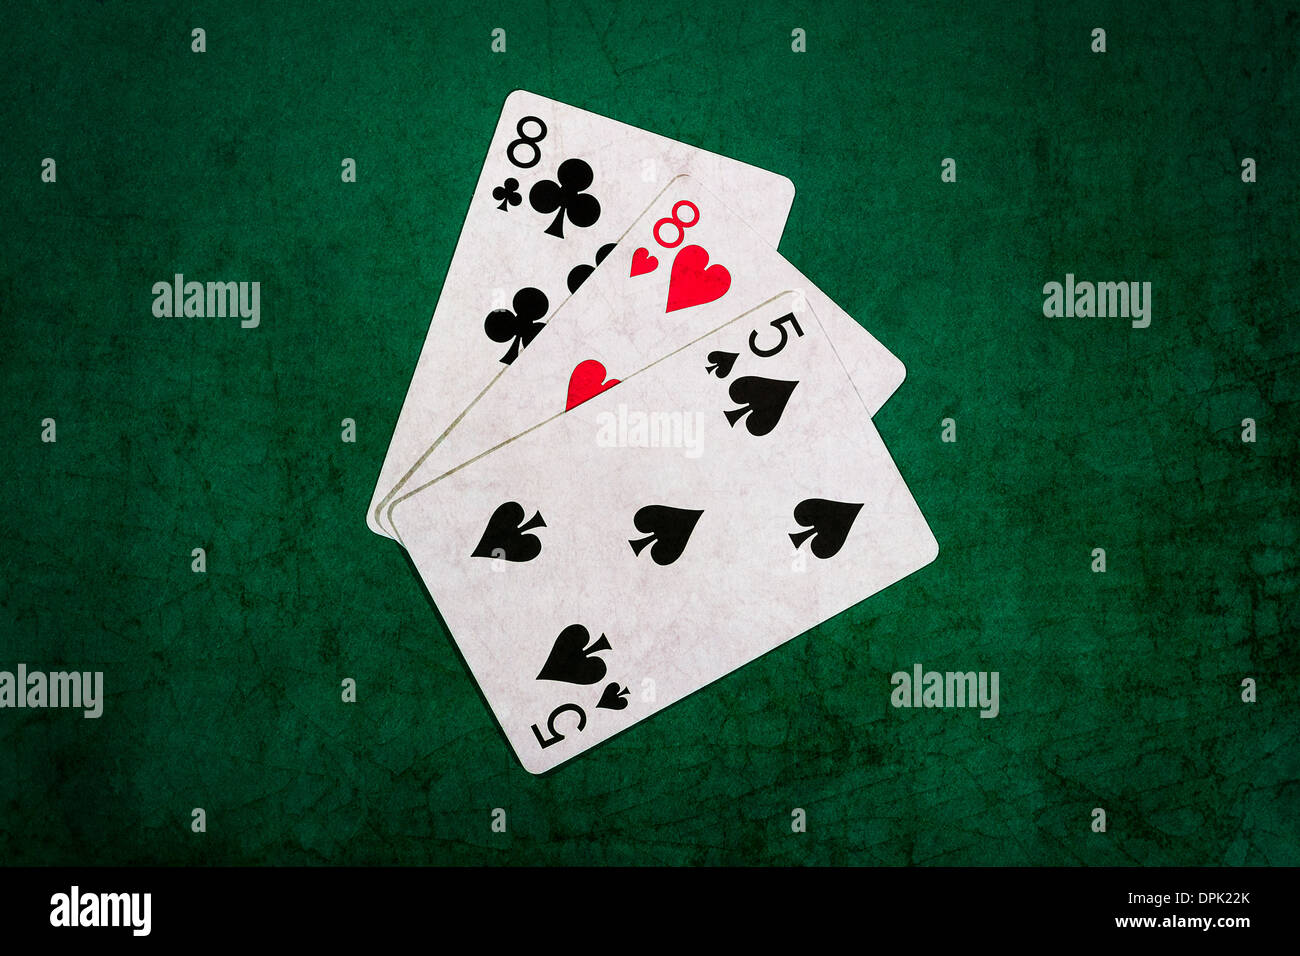 Twenty One 11. Closeup view of playing cards forming the blackjack combination of twenty one points - Stock Image